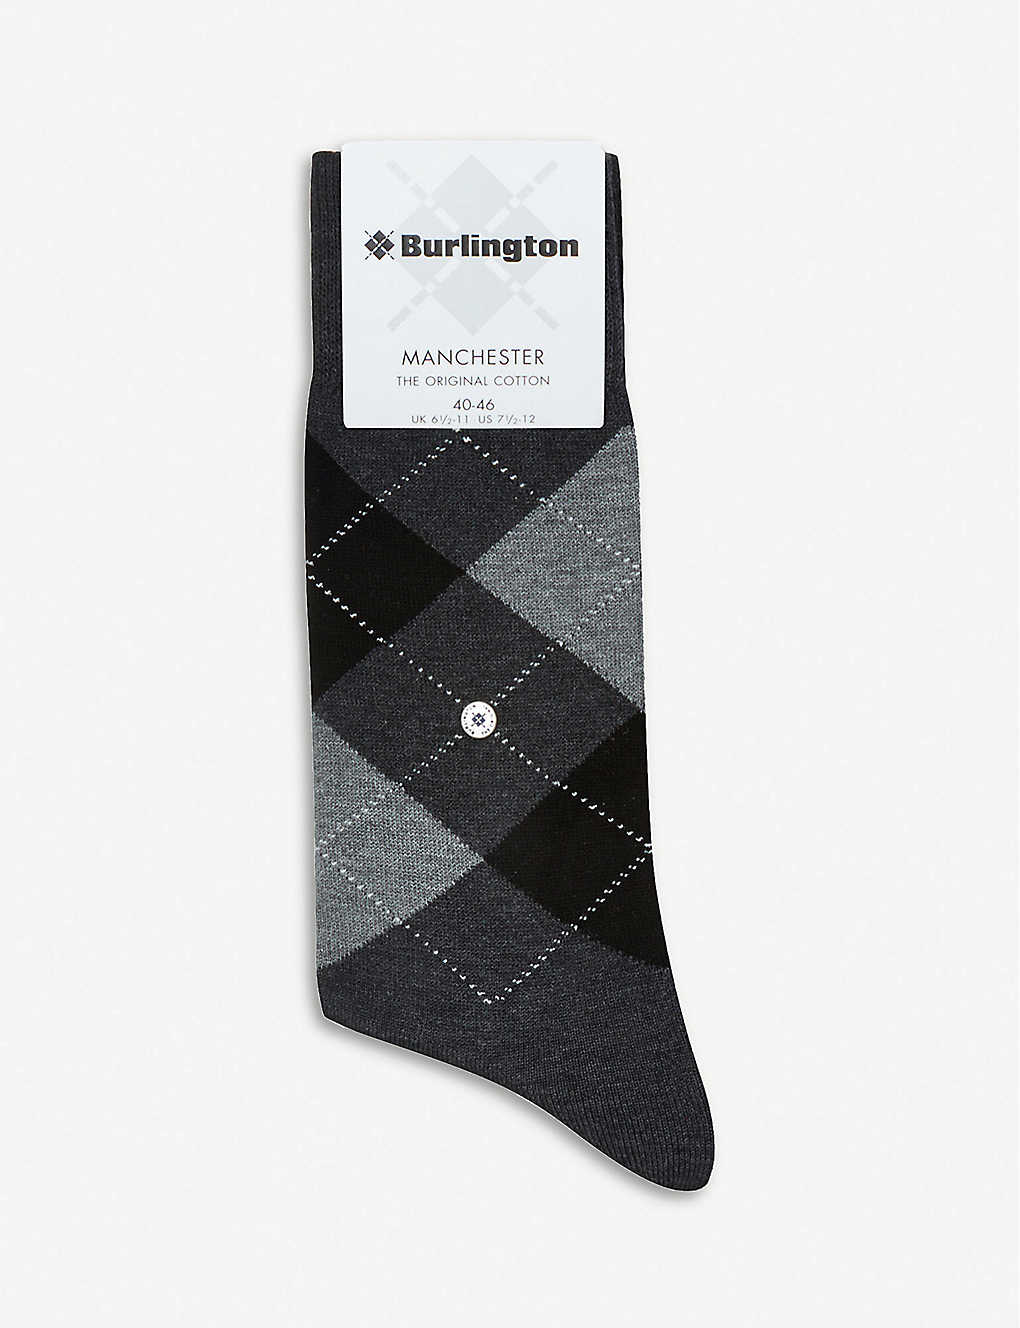 Burlington Mens Socken Dublin M SO